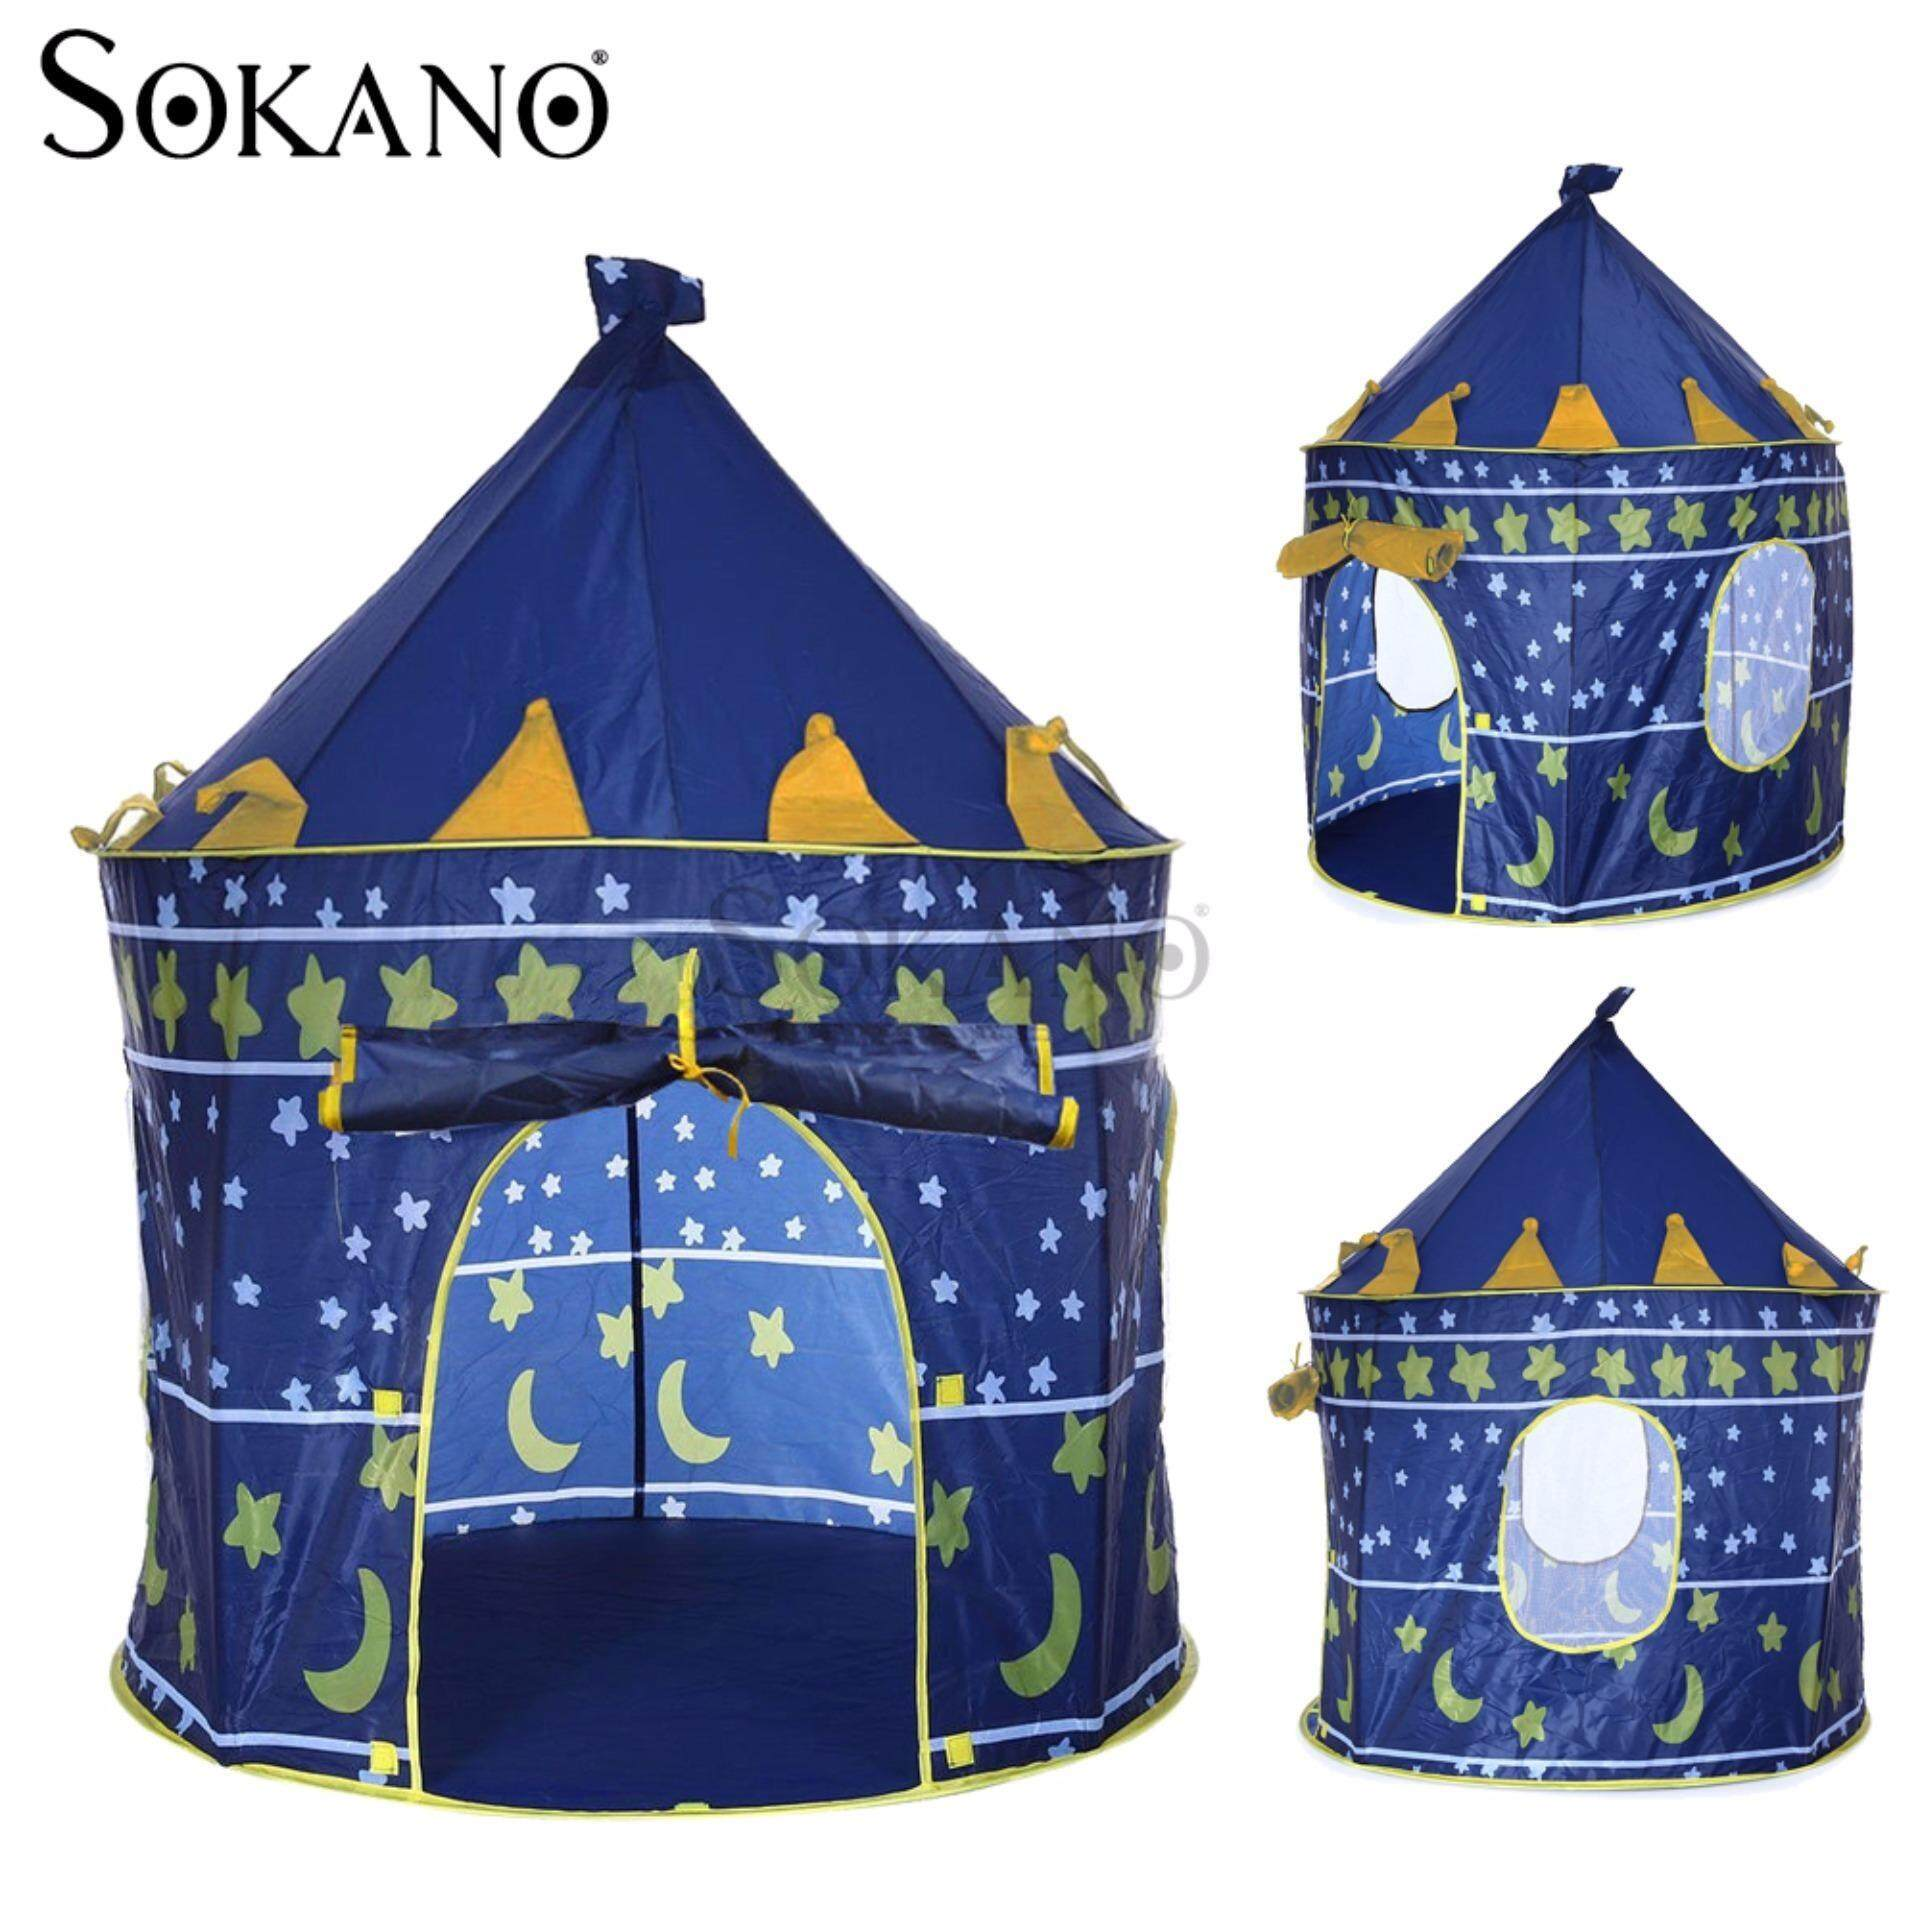 SOKANO Portable Folding Kids Play Tent Castle Cubby House - Prince(Blue)